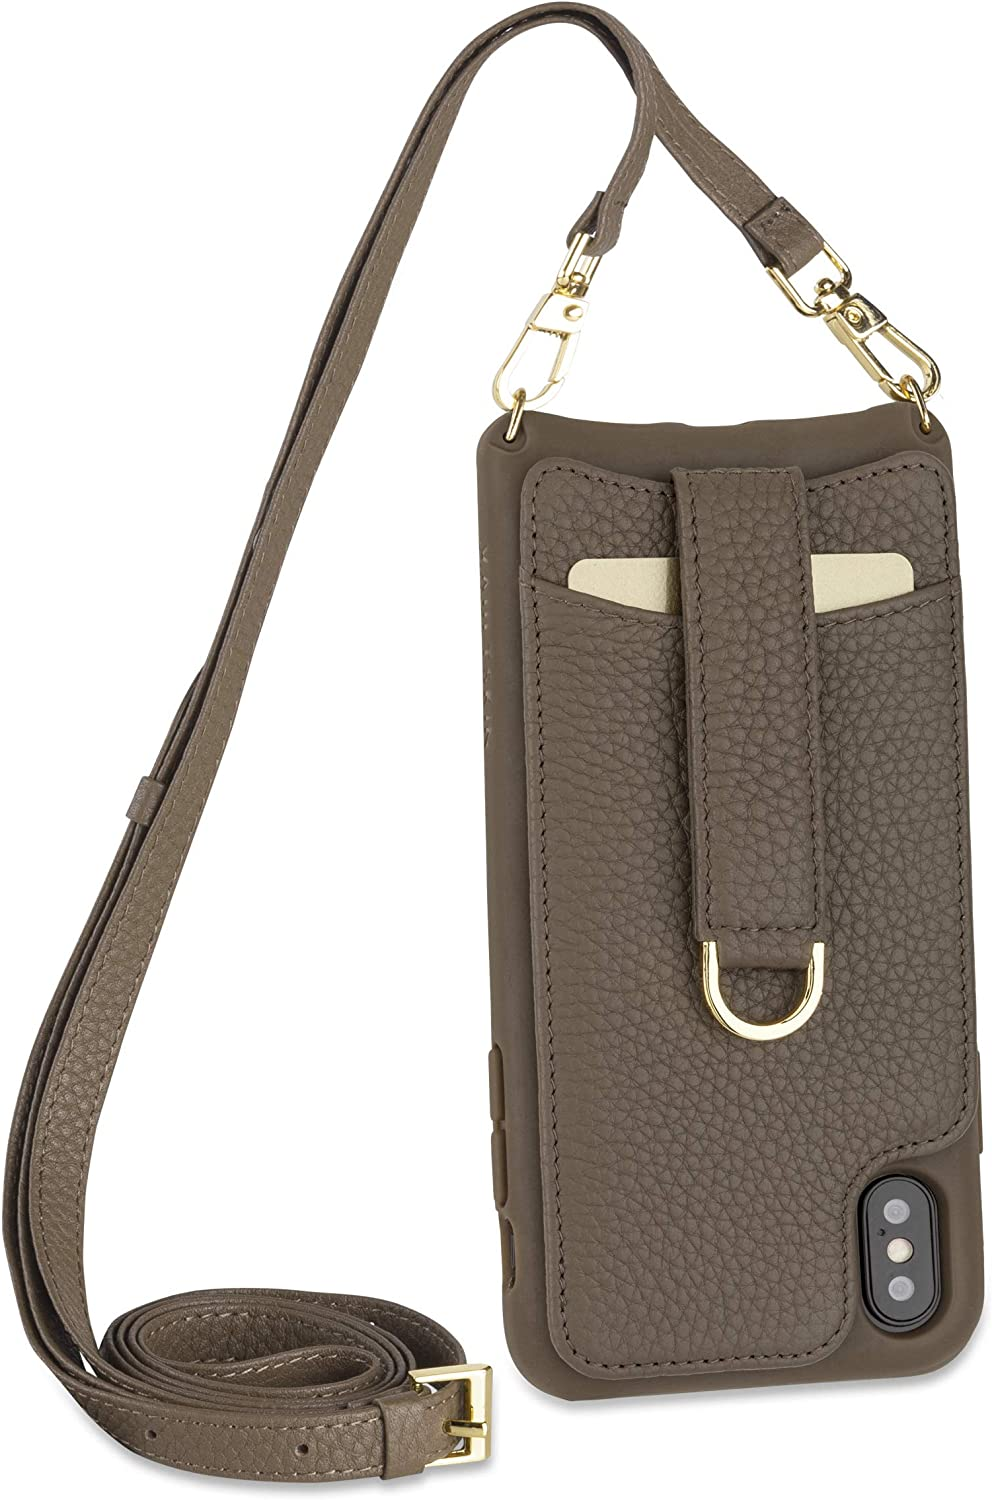 Vaultskin Victoria Crossbody Wallet Case Enhanced by We OFFer at Miami Mall cheap prices VAULTCARD f